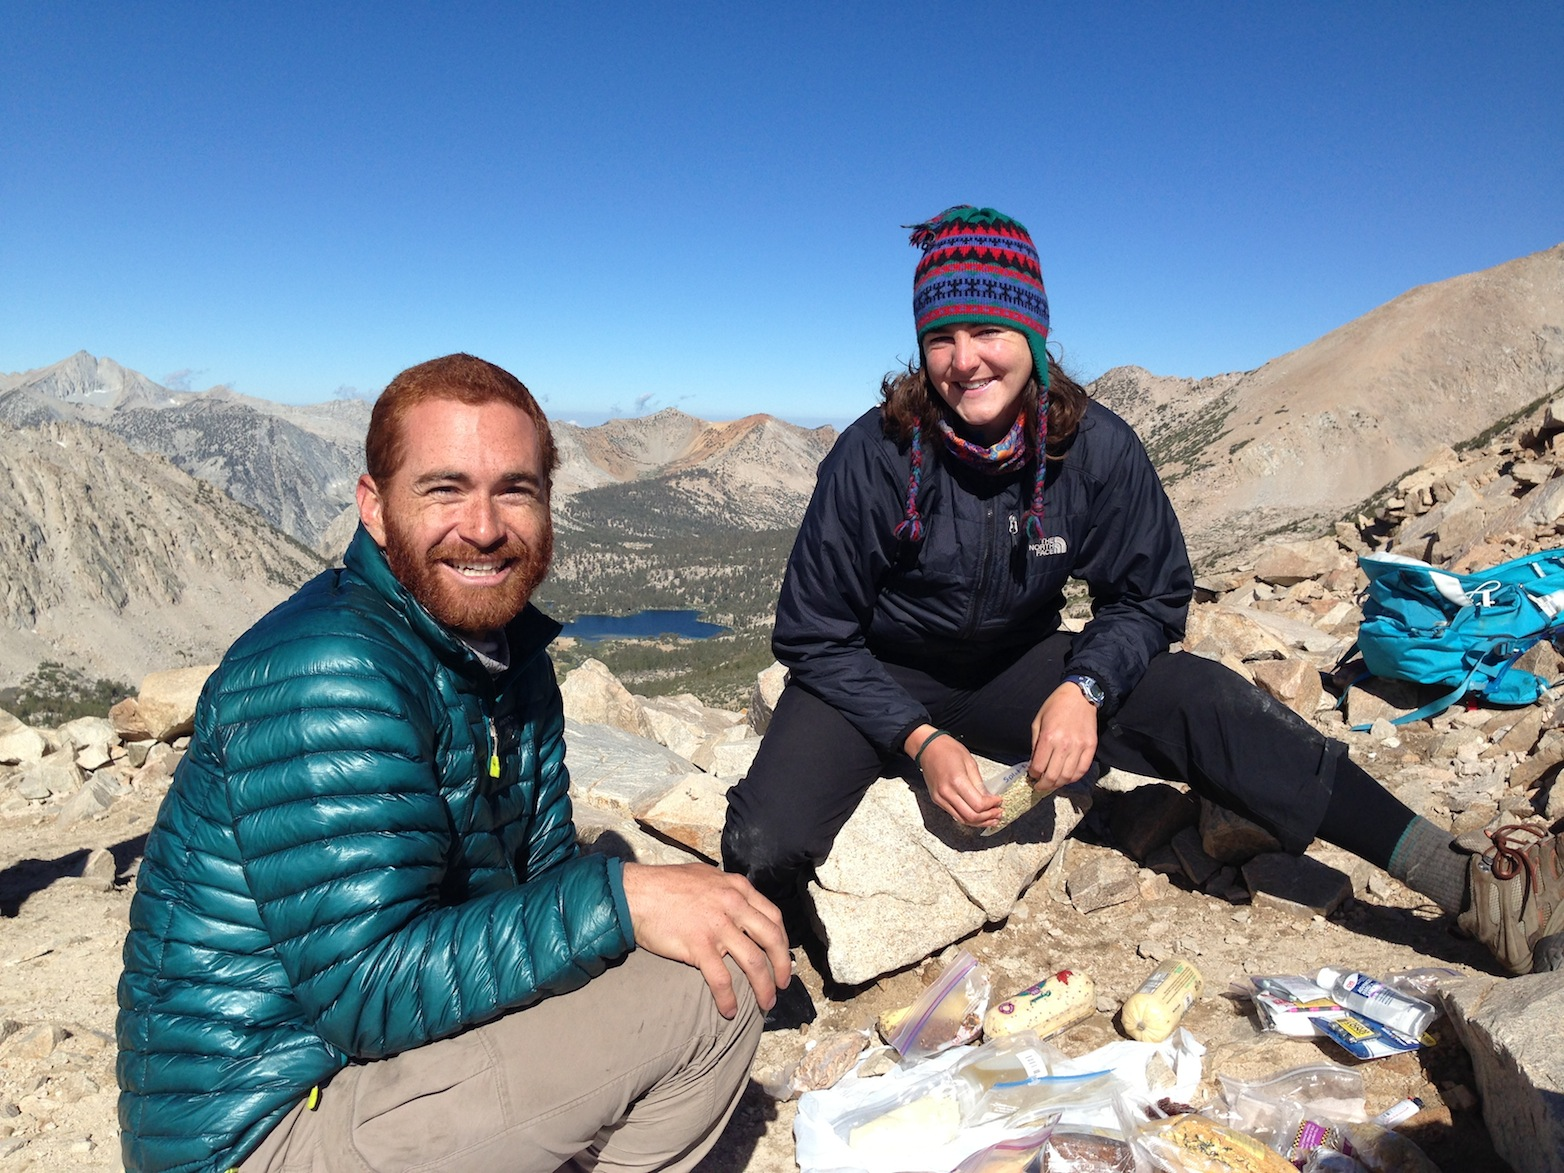 JMT hikers Adam and a happy friend on Kearsarge Pass on July 21.